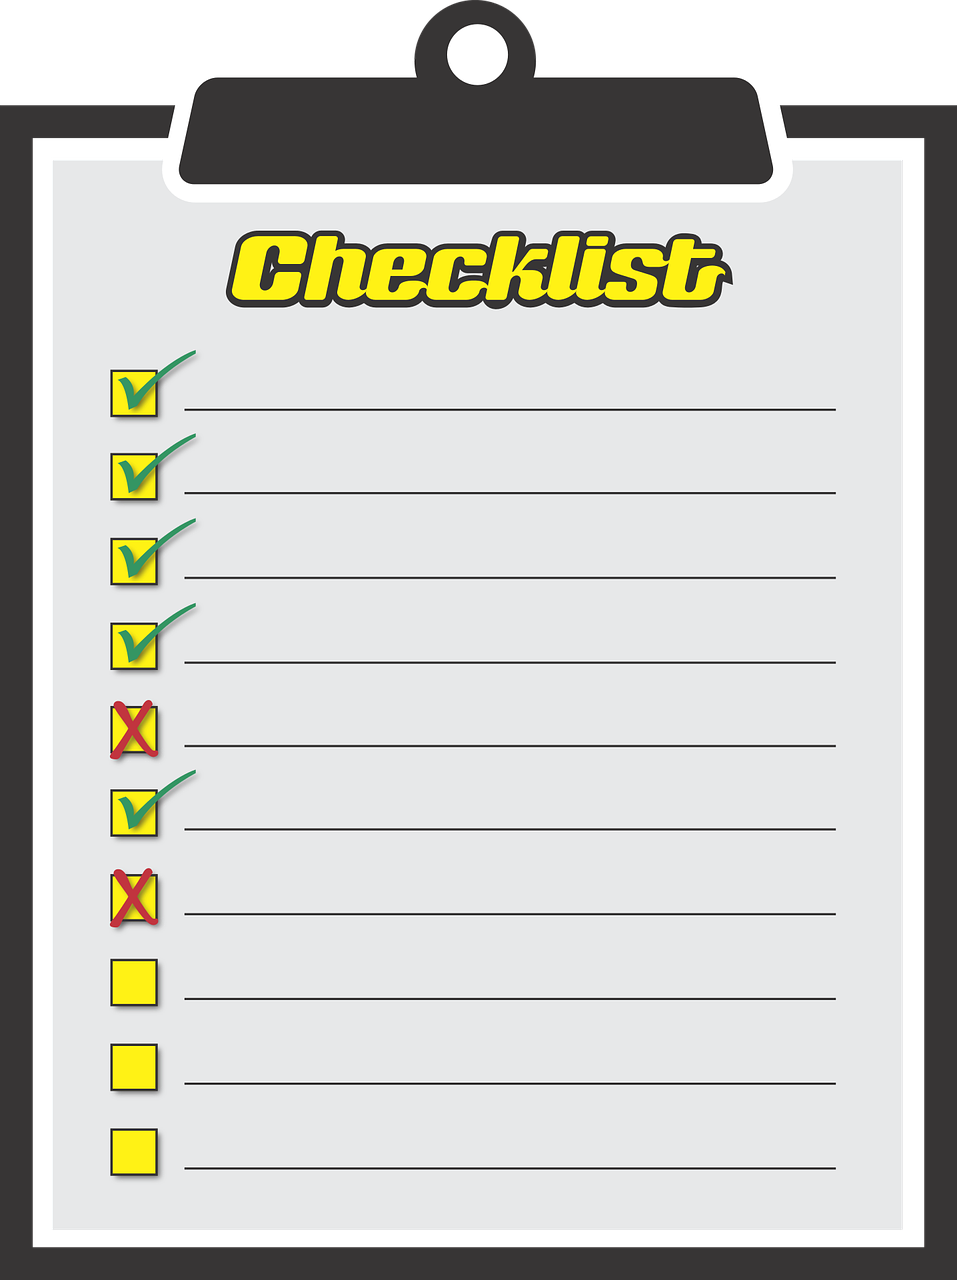 checklist-1454170_1280.png